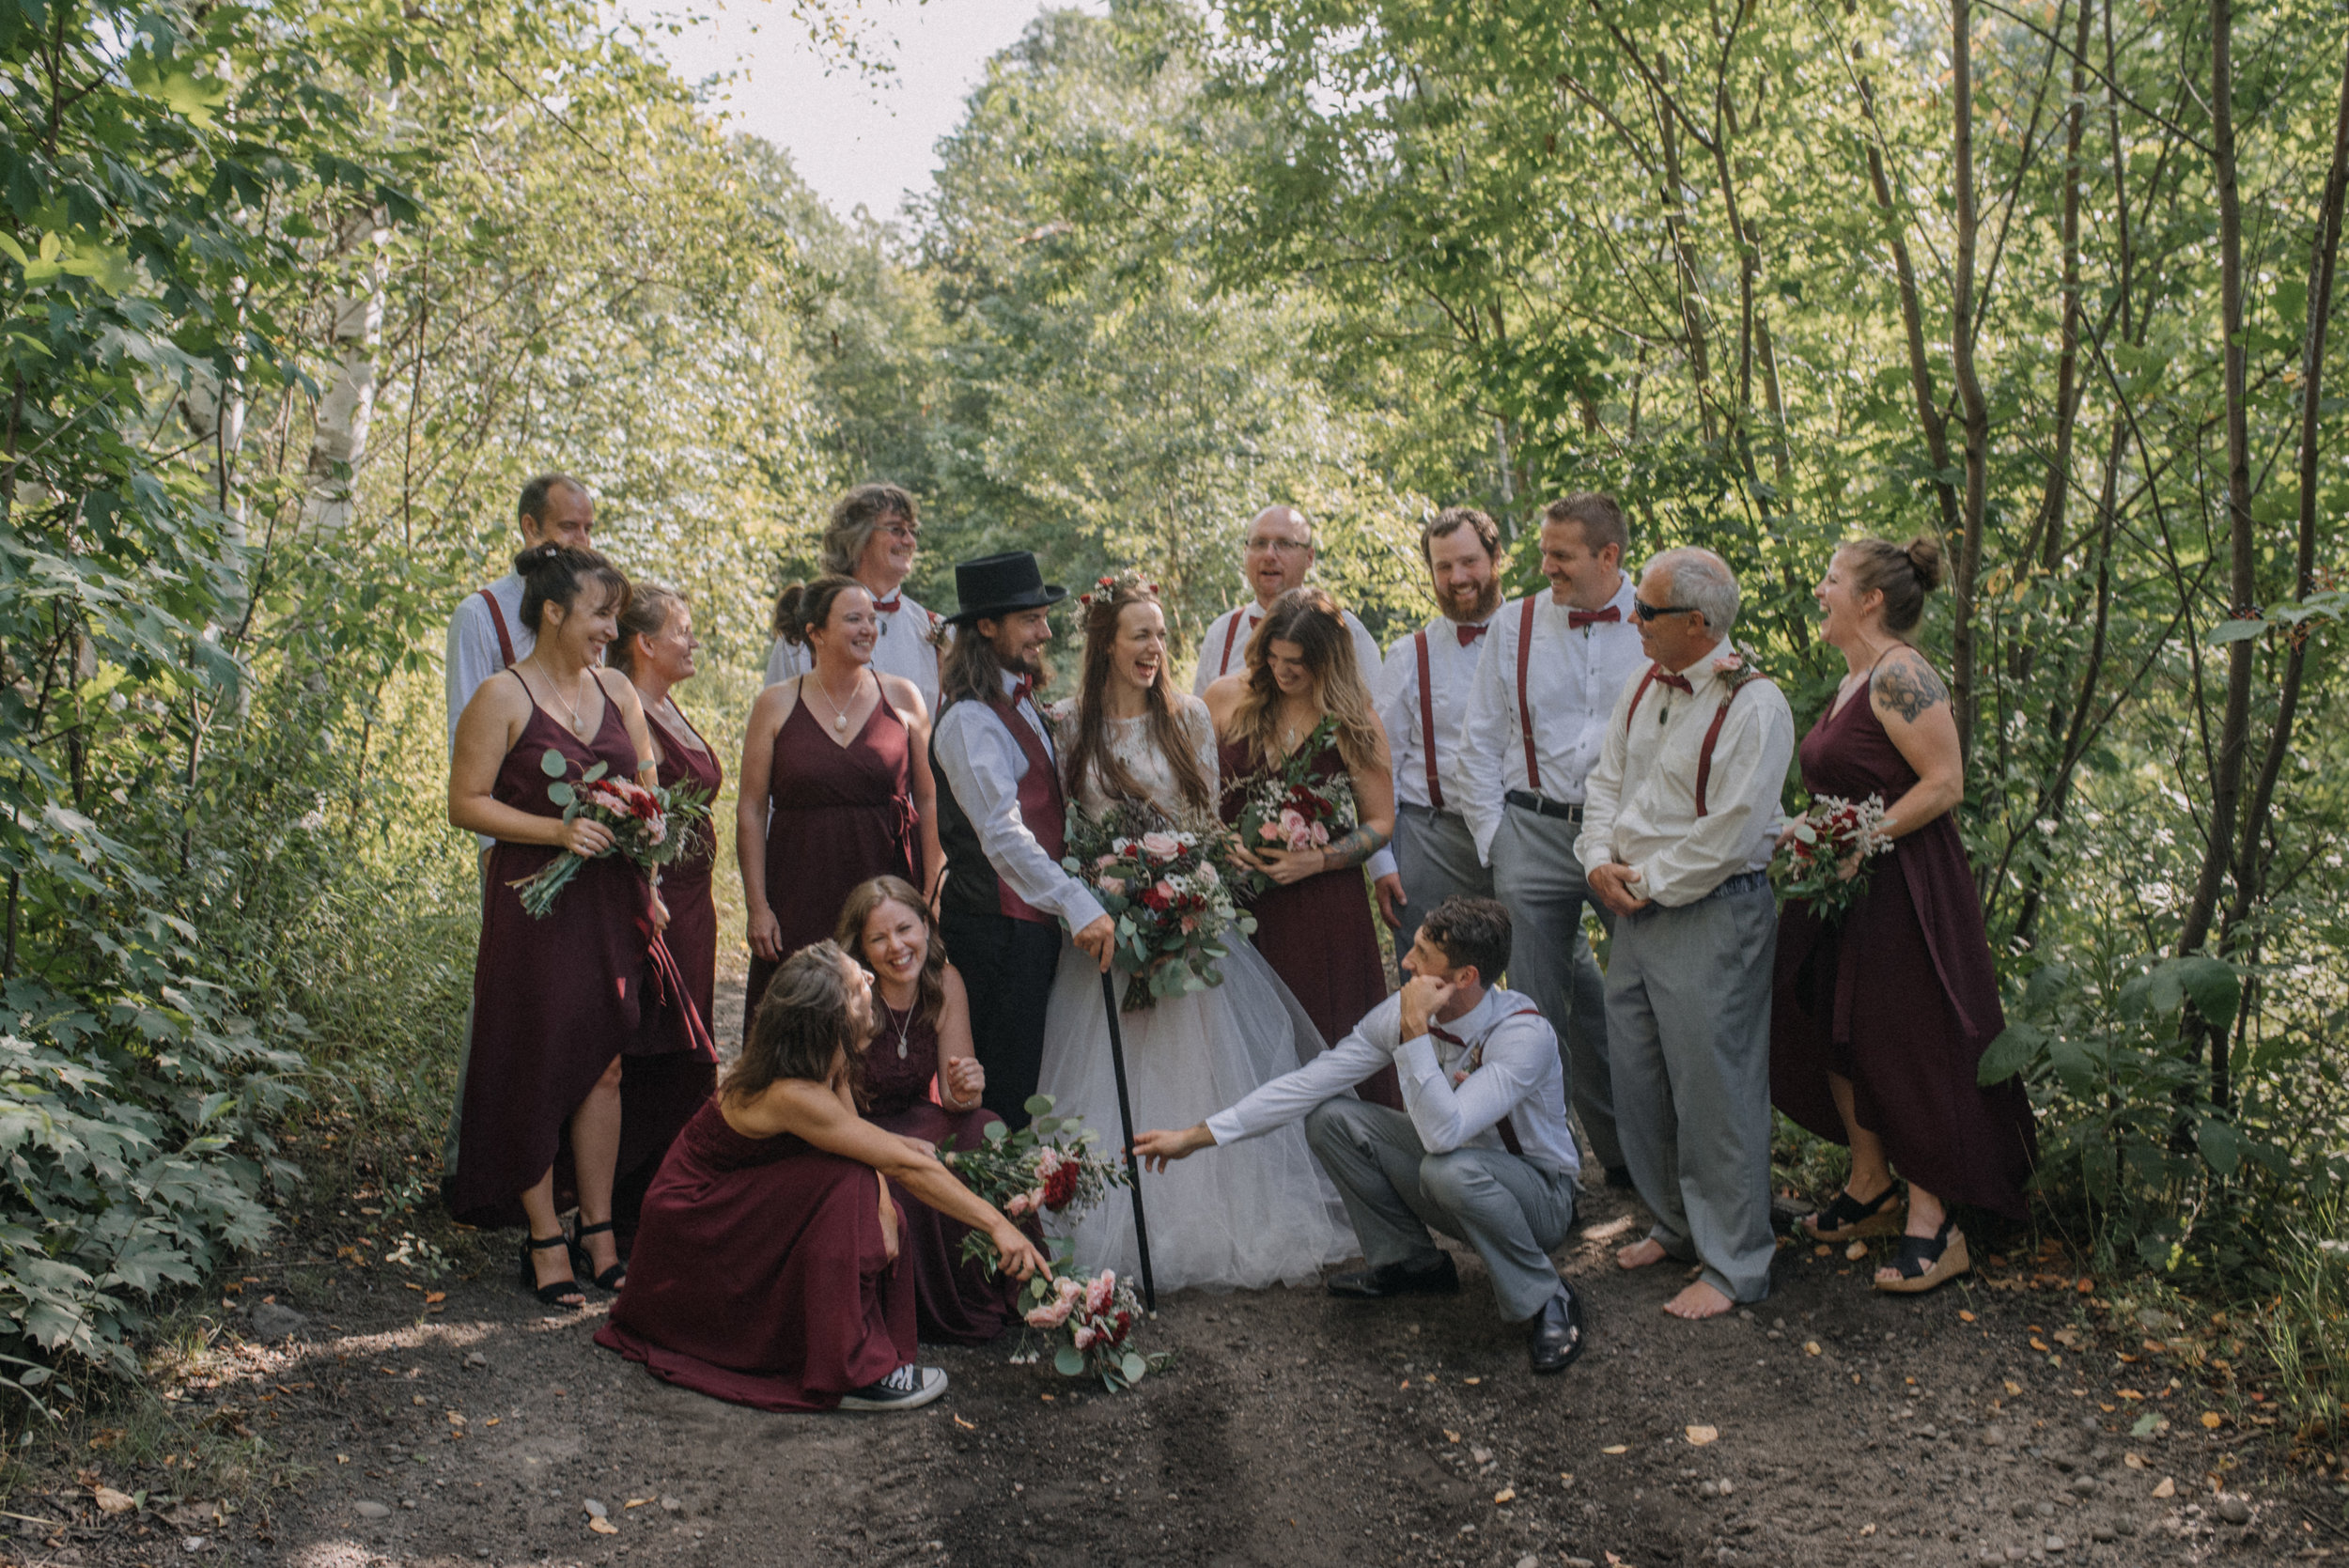 ottawa_wedding_photographer_gatineau_photographe_mariage_documentary_candid_photojournalist_natural_raw_boho_wedding_backyard (26).JPG